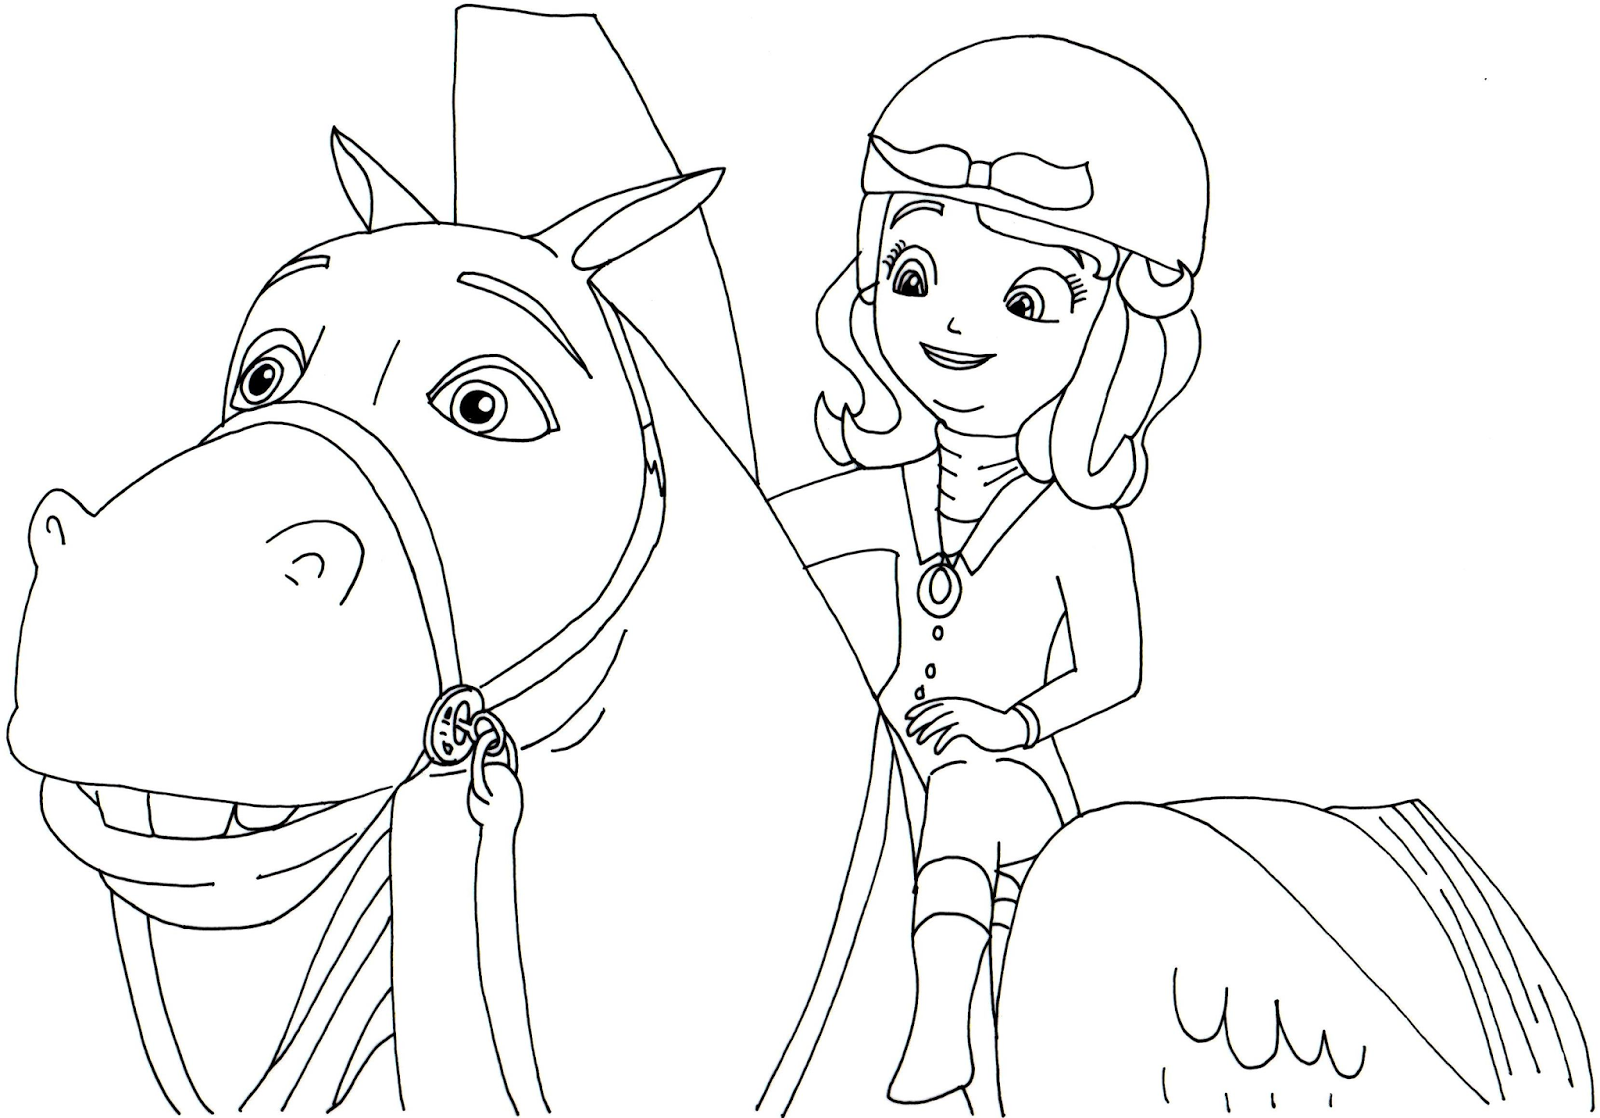 prncess coloring pages - photo#41